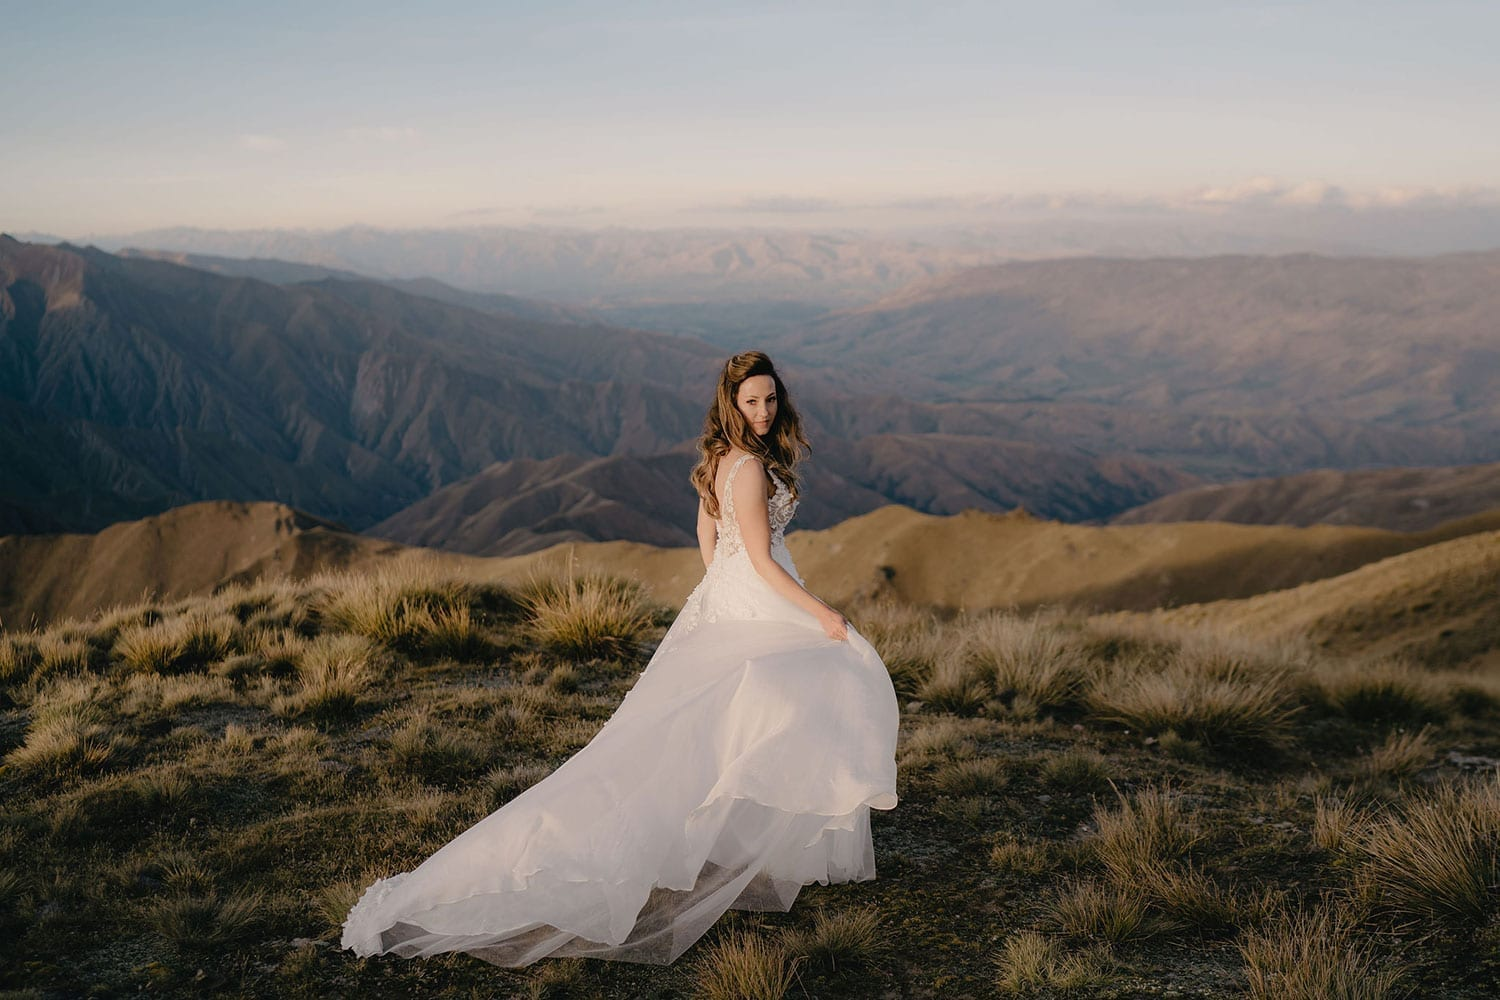 Vinka Design Features Real Weddings - bride in custom made gown, a beautiful intricate, sheer lace bodice, with a flowing, detachable, silk chiffon and tulle overskirt. The skirt had hand appliqued lace strategically placed throughout and trailing up from the train. On mountain in NZ with dress flowing behind